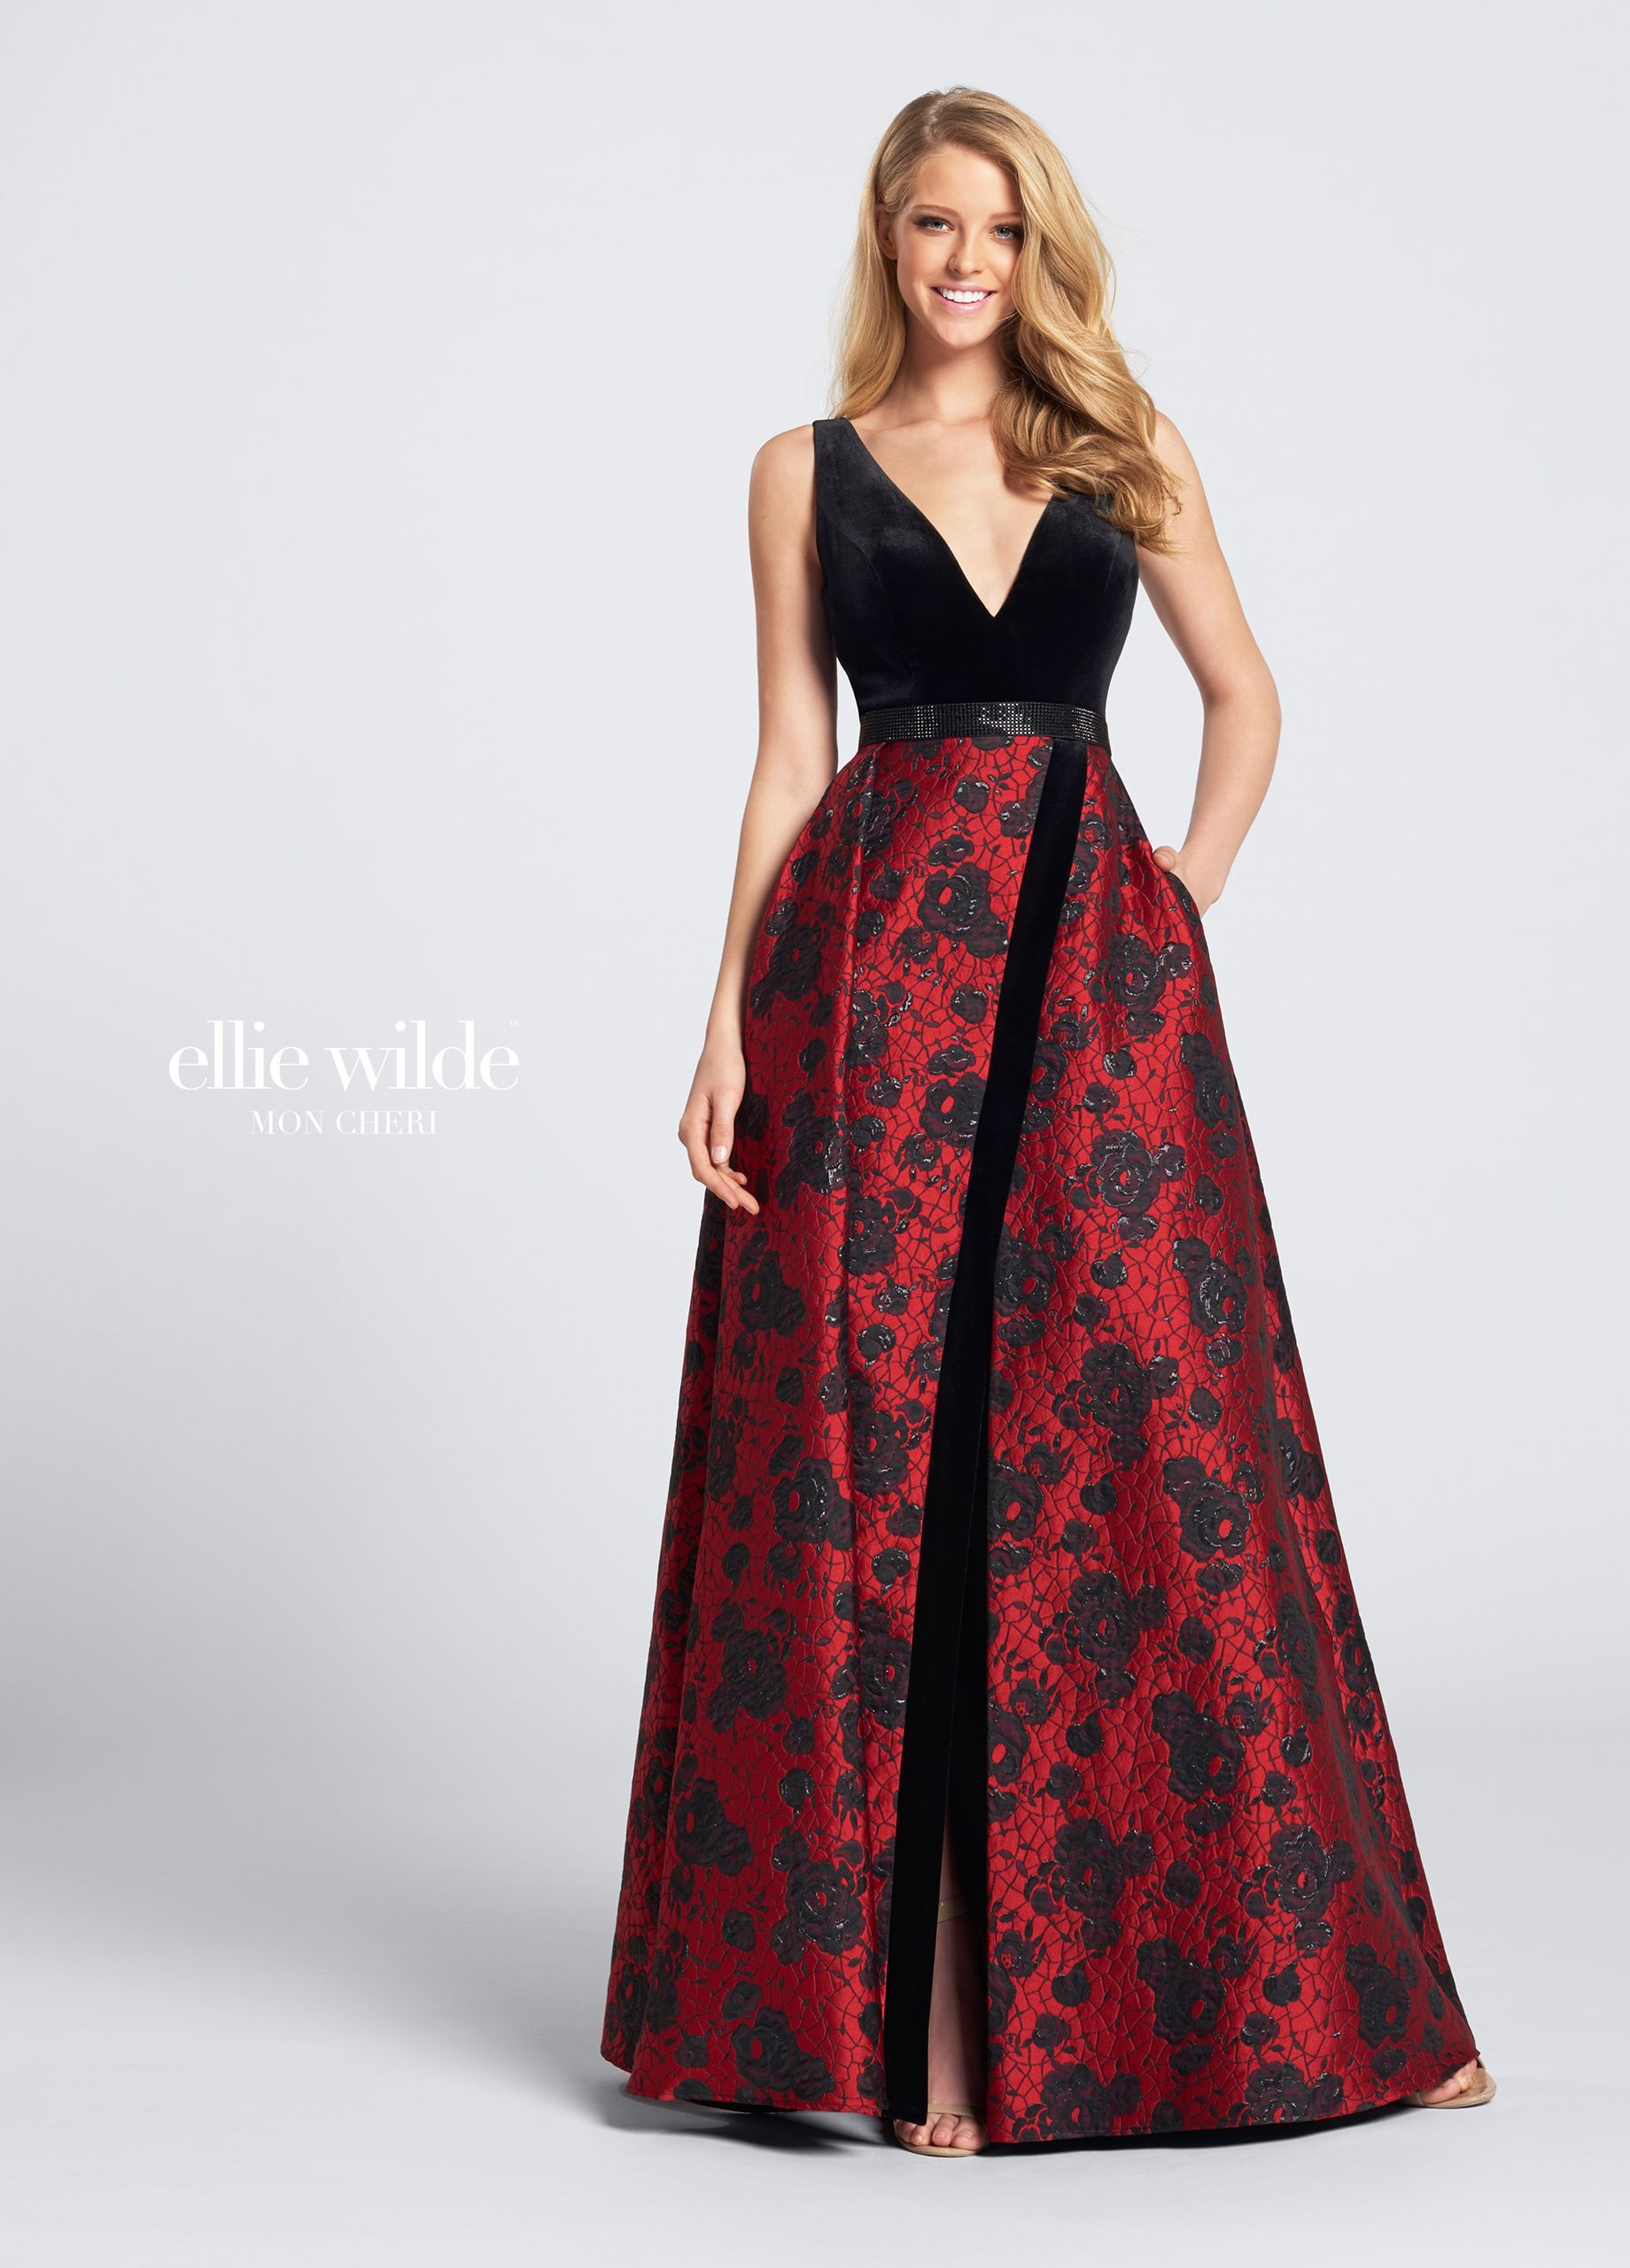 f7e1f5a21a62 Ellie Wilde EW21721 - Sleeveless velvet and Jacquard full A-line gown with  front and back deep V-necklines, velvet bodice with heat set stone  waistband, ...